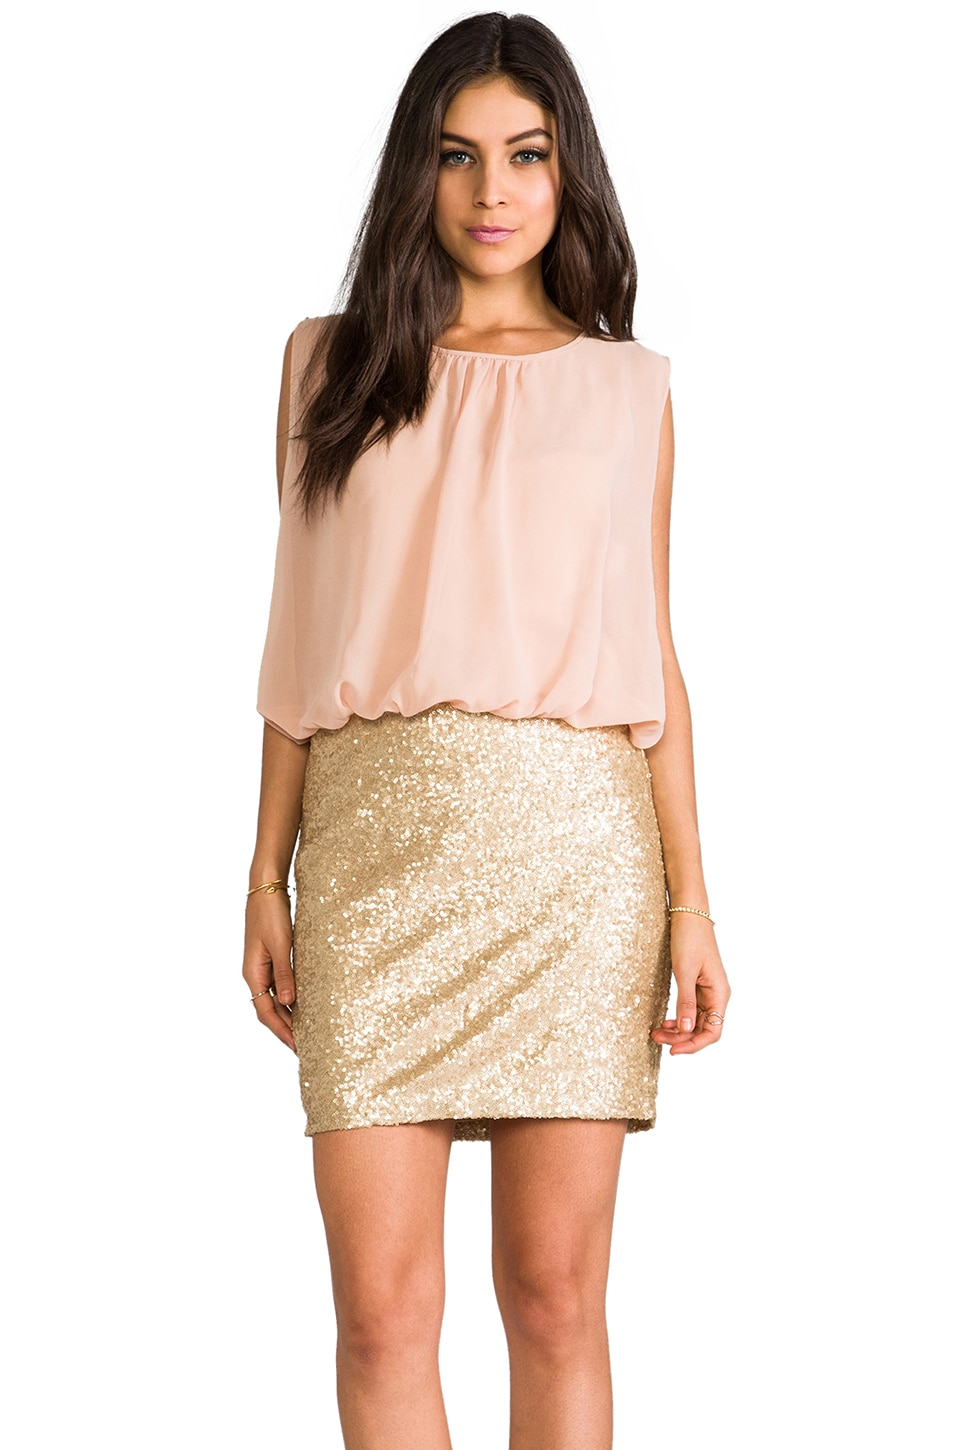 MM Couture by Miss Me Sequin Bottom Dress in Gold